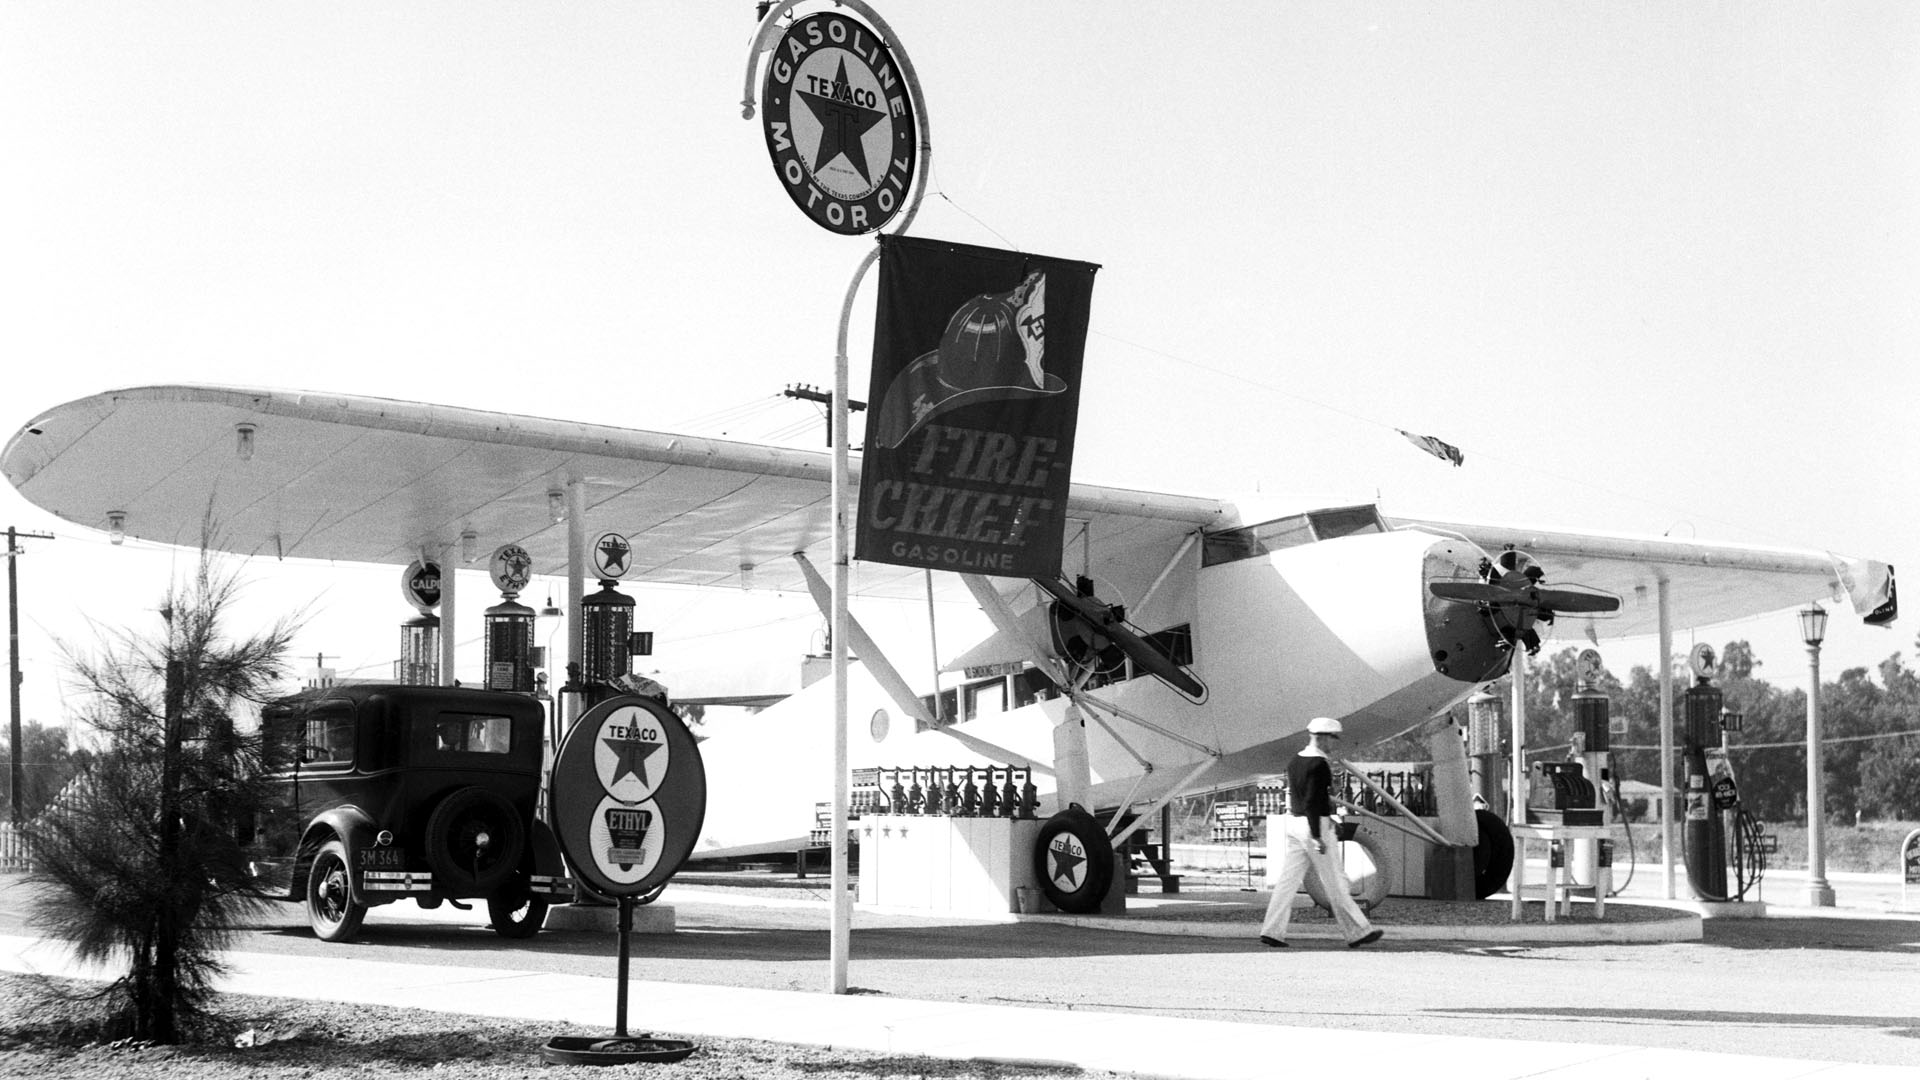 Gas Station Modeled After Plane